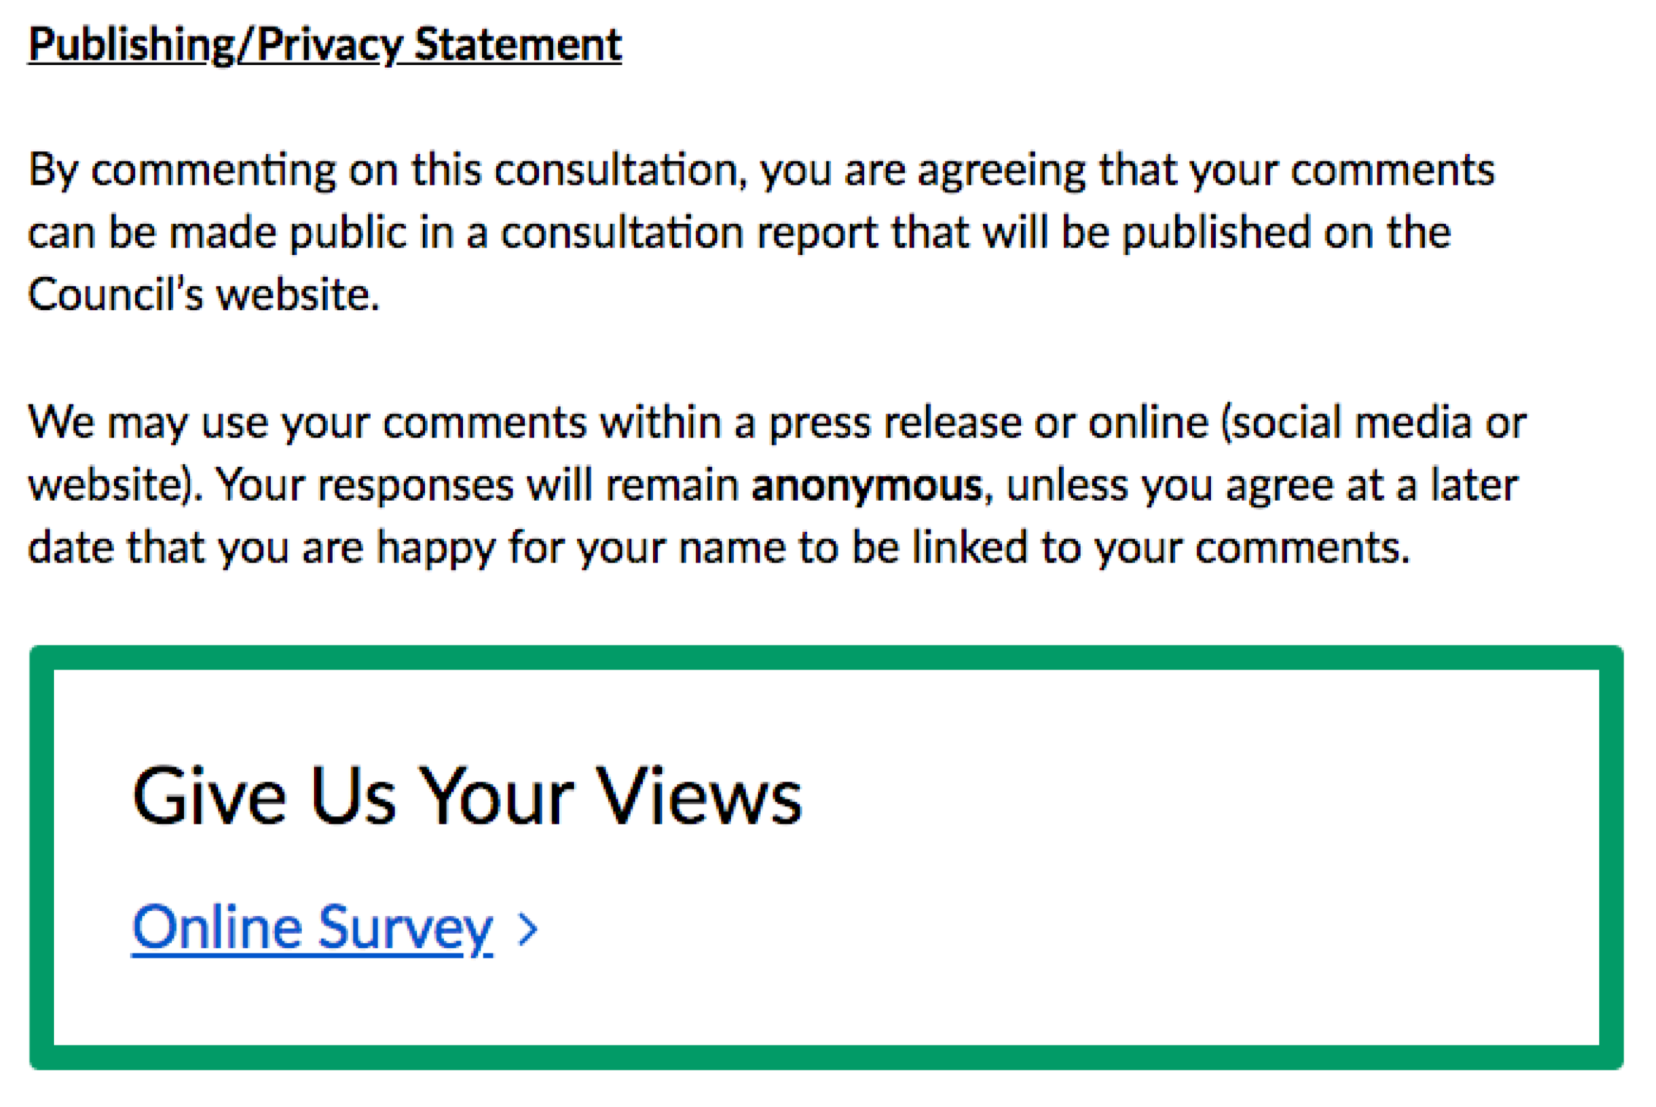 Screen-shot of a Citizen Space consultation showing a privacy statement on the consultation overview page directly above the call-to-action box linking into the survey